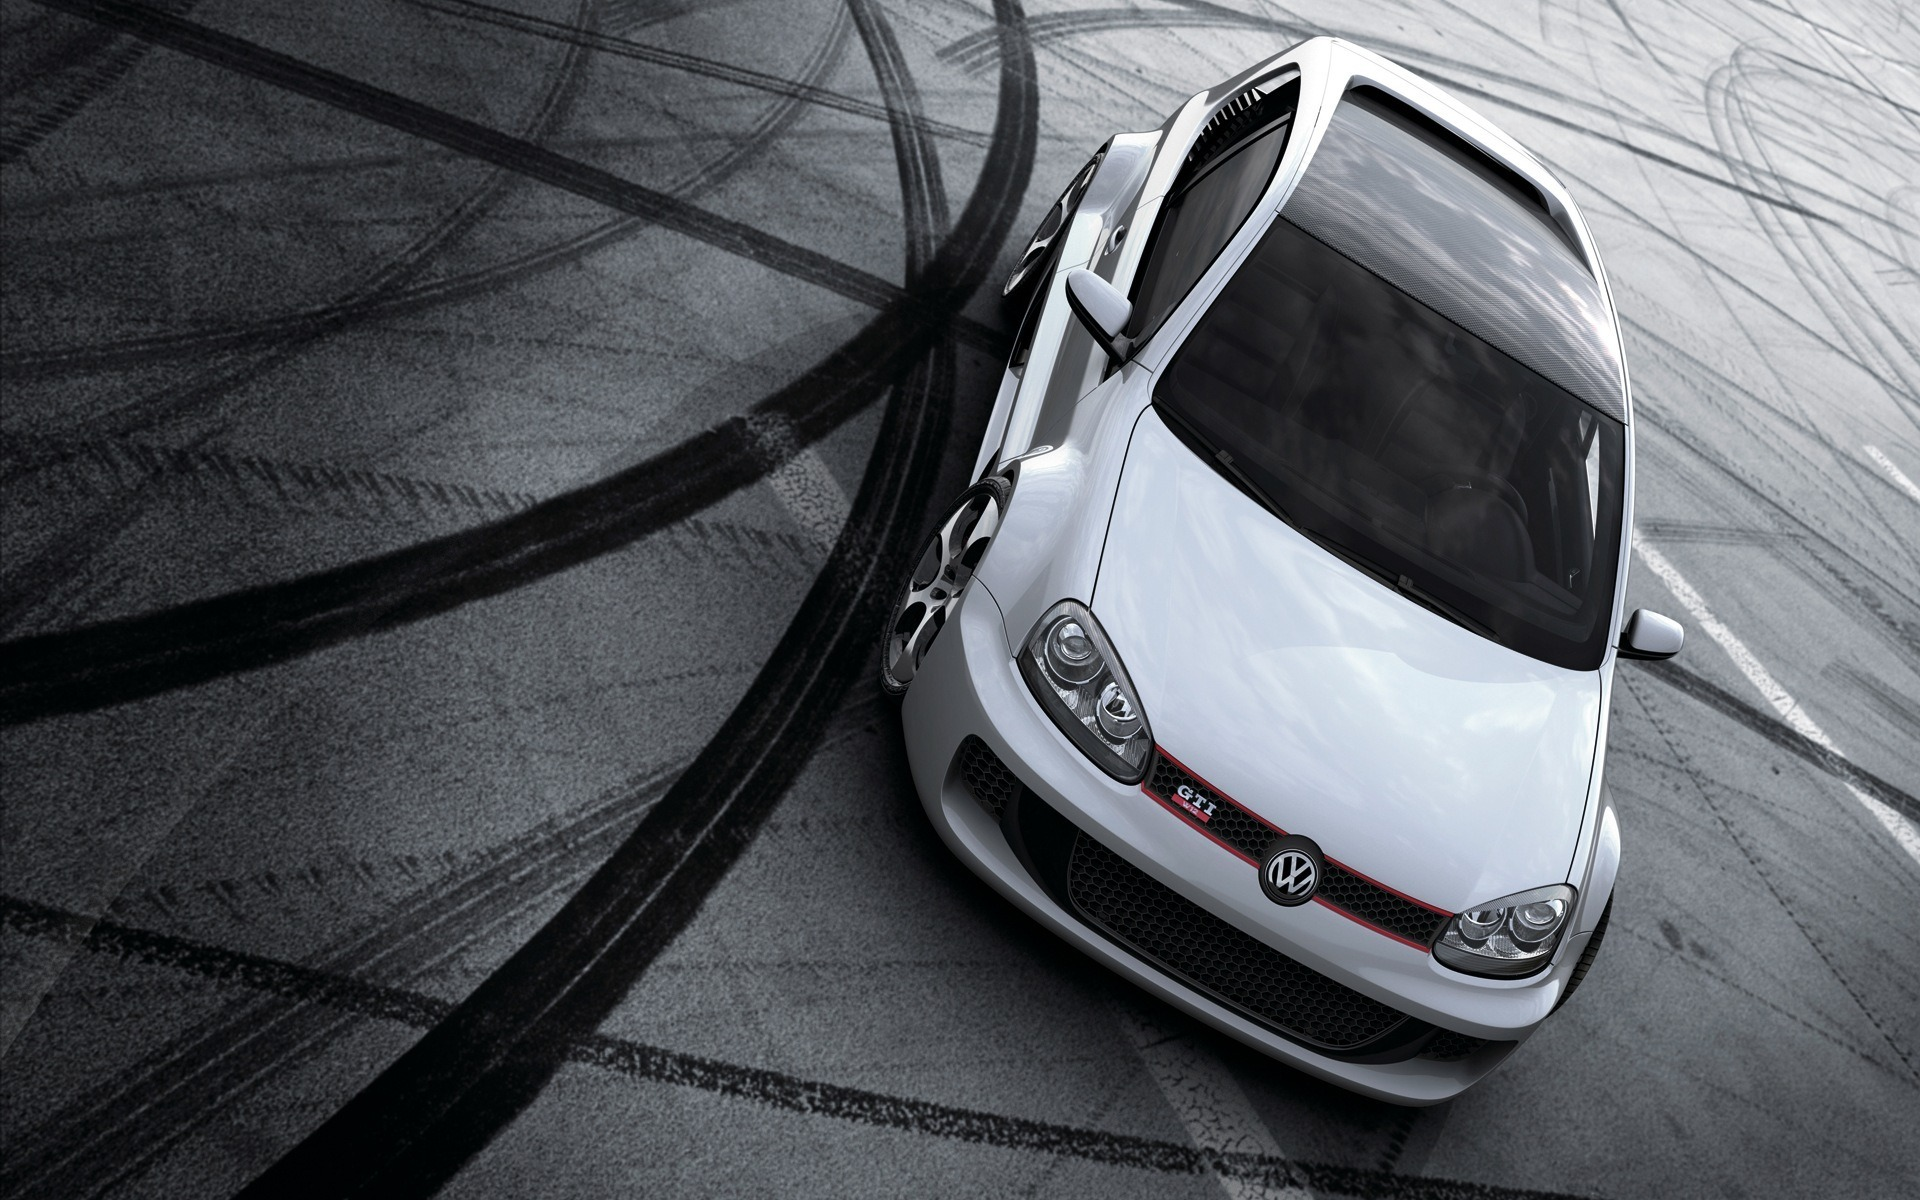 VW Golf GTI W12 Wallpaper Volkswagen Cars Wallpapers